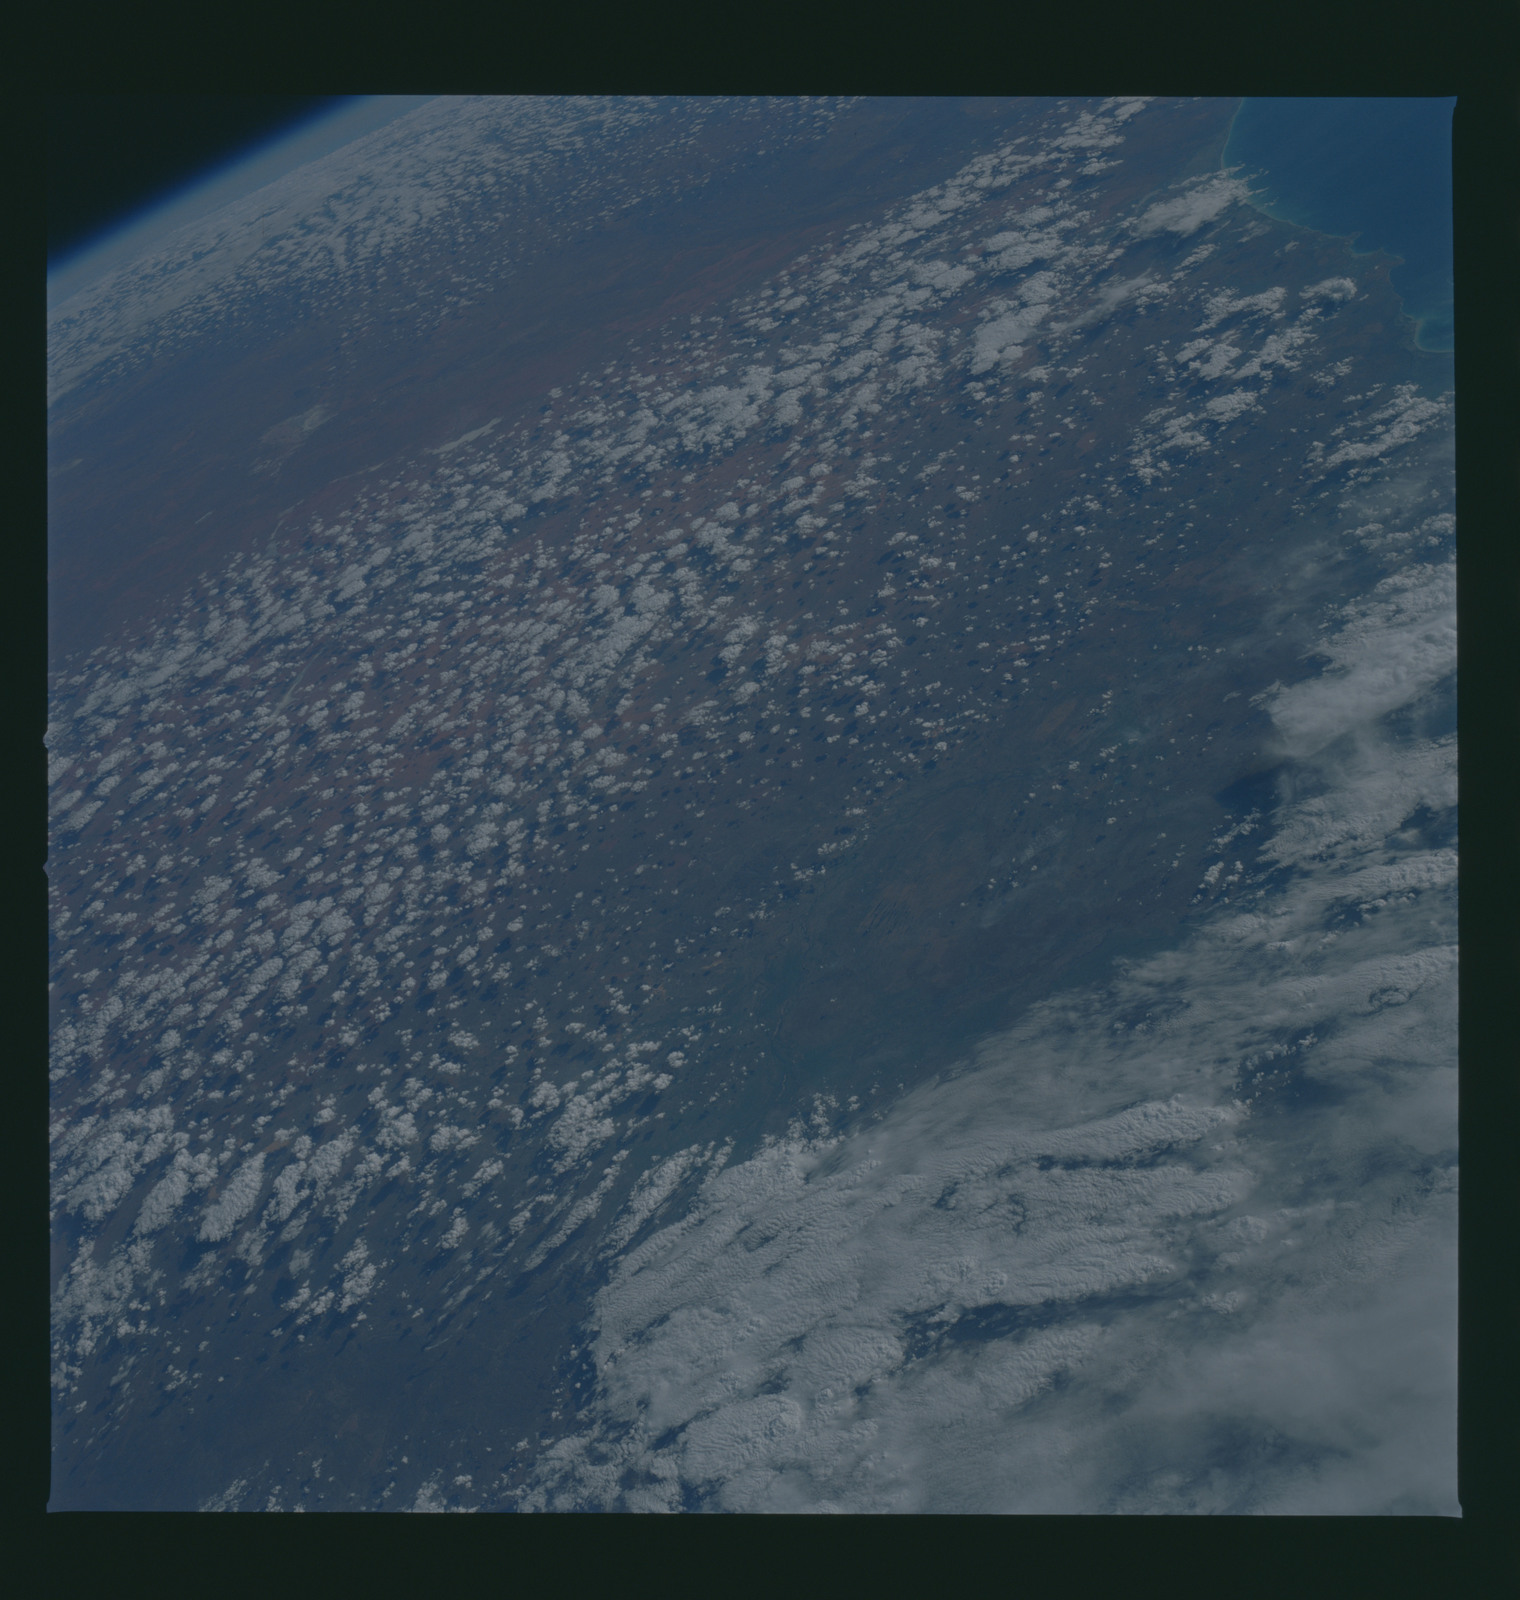 S37-94-070 - STS-037 - Earth observations taken from OV-104 during STS-37 mission